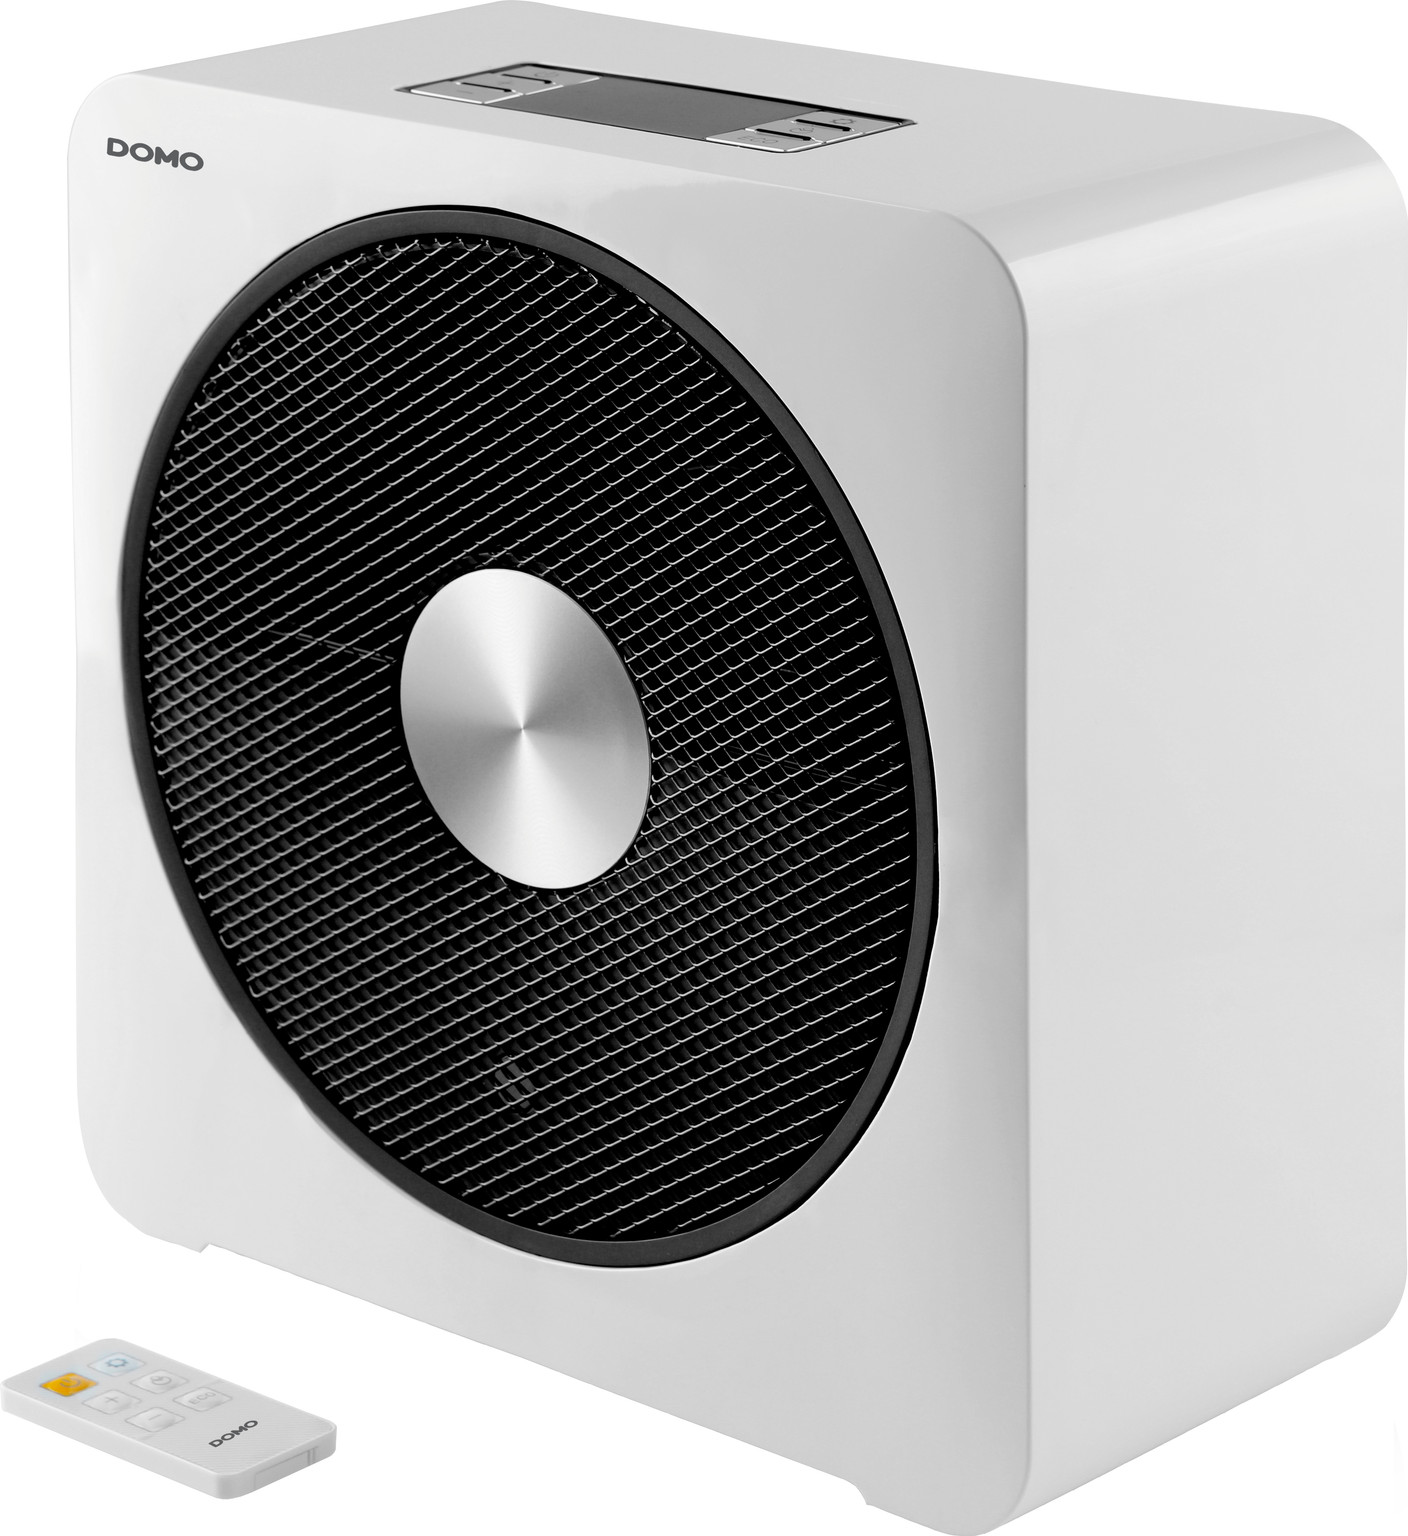 DOMO DO7344H Turbo verwarmer mobiele verwarming